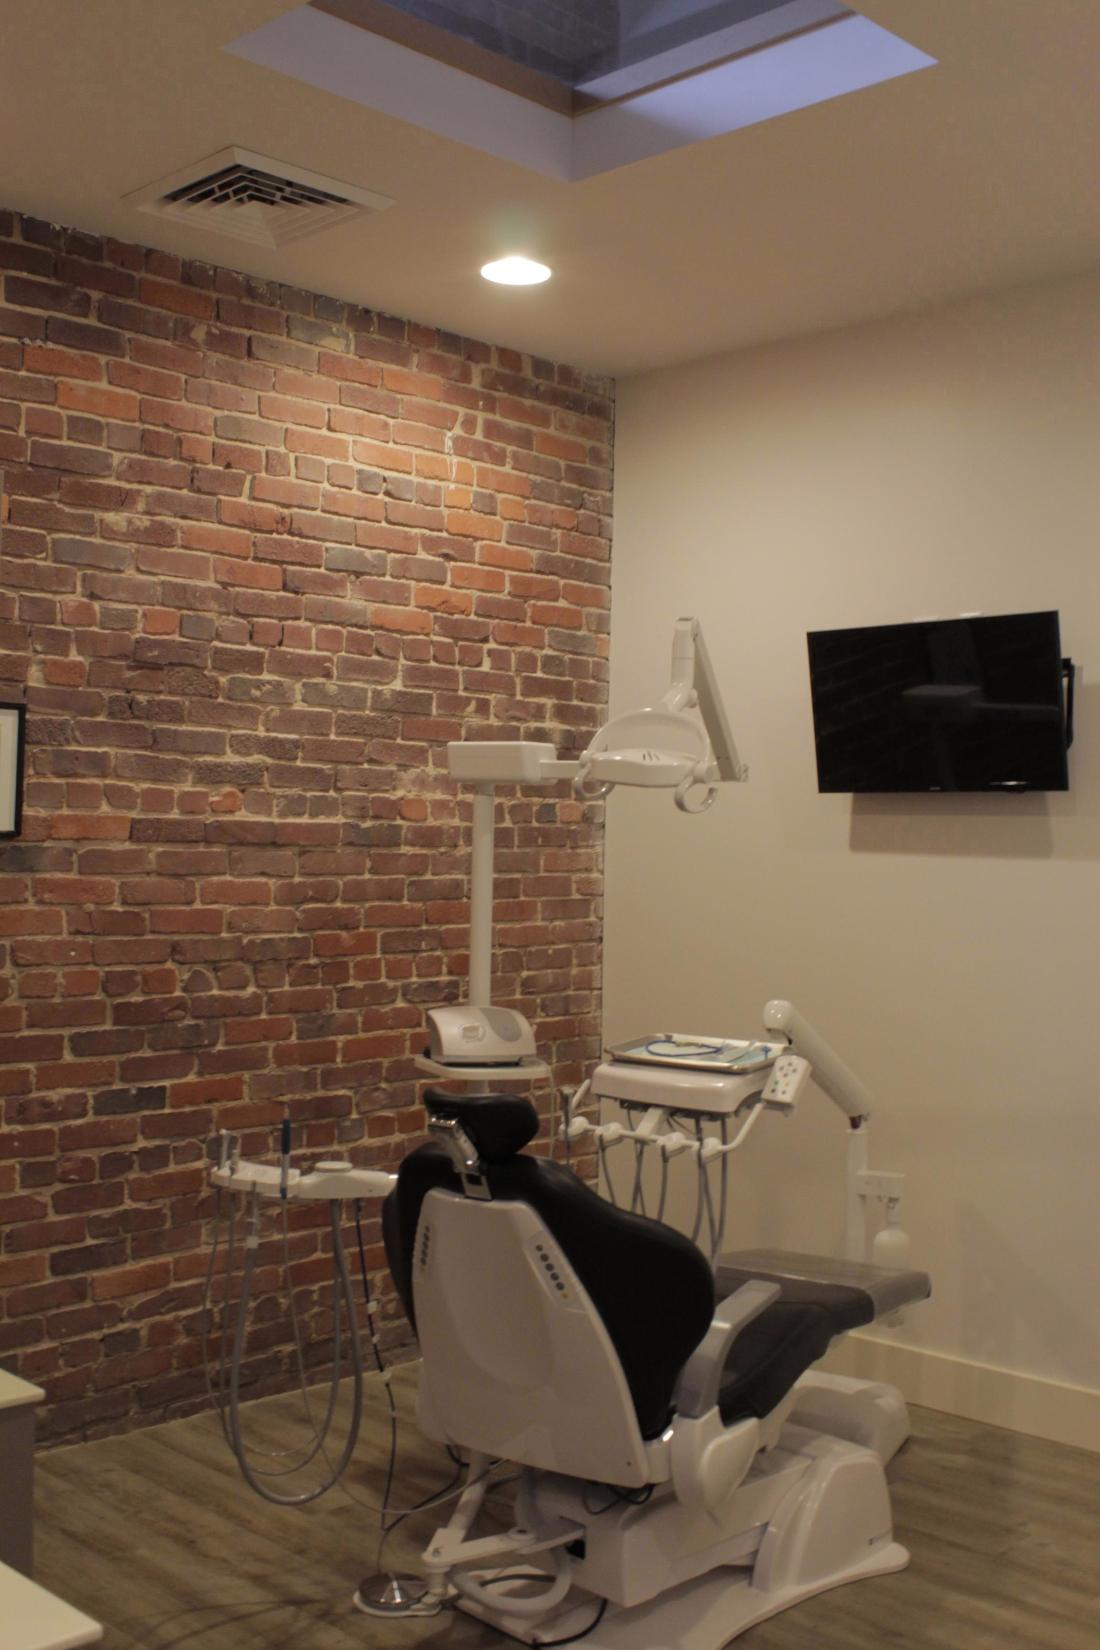 The Exam Room with Sky Light in Birmingham, AL at Cook Family Dental